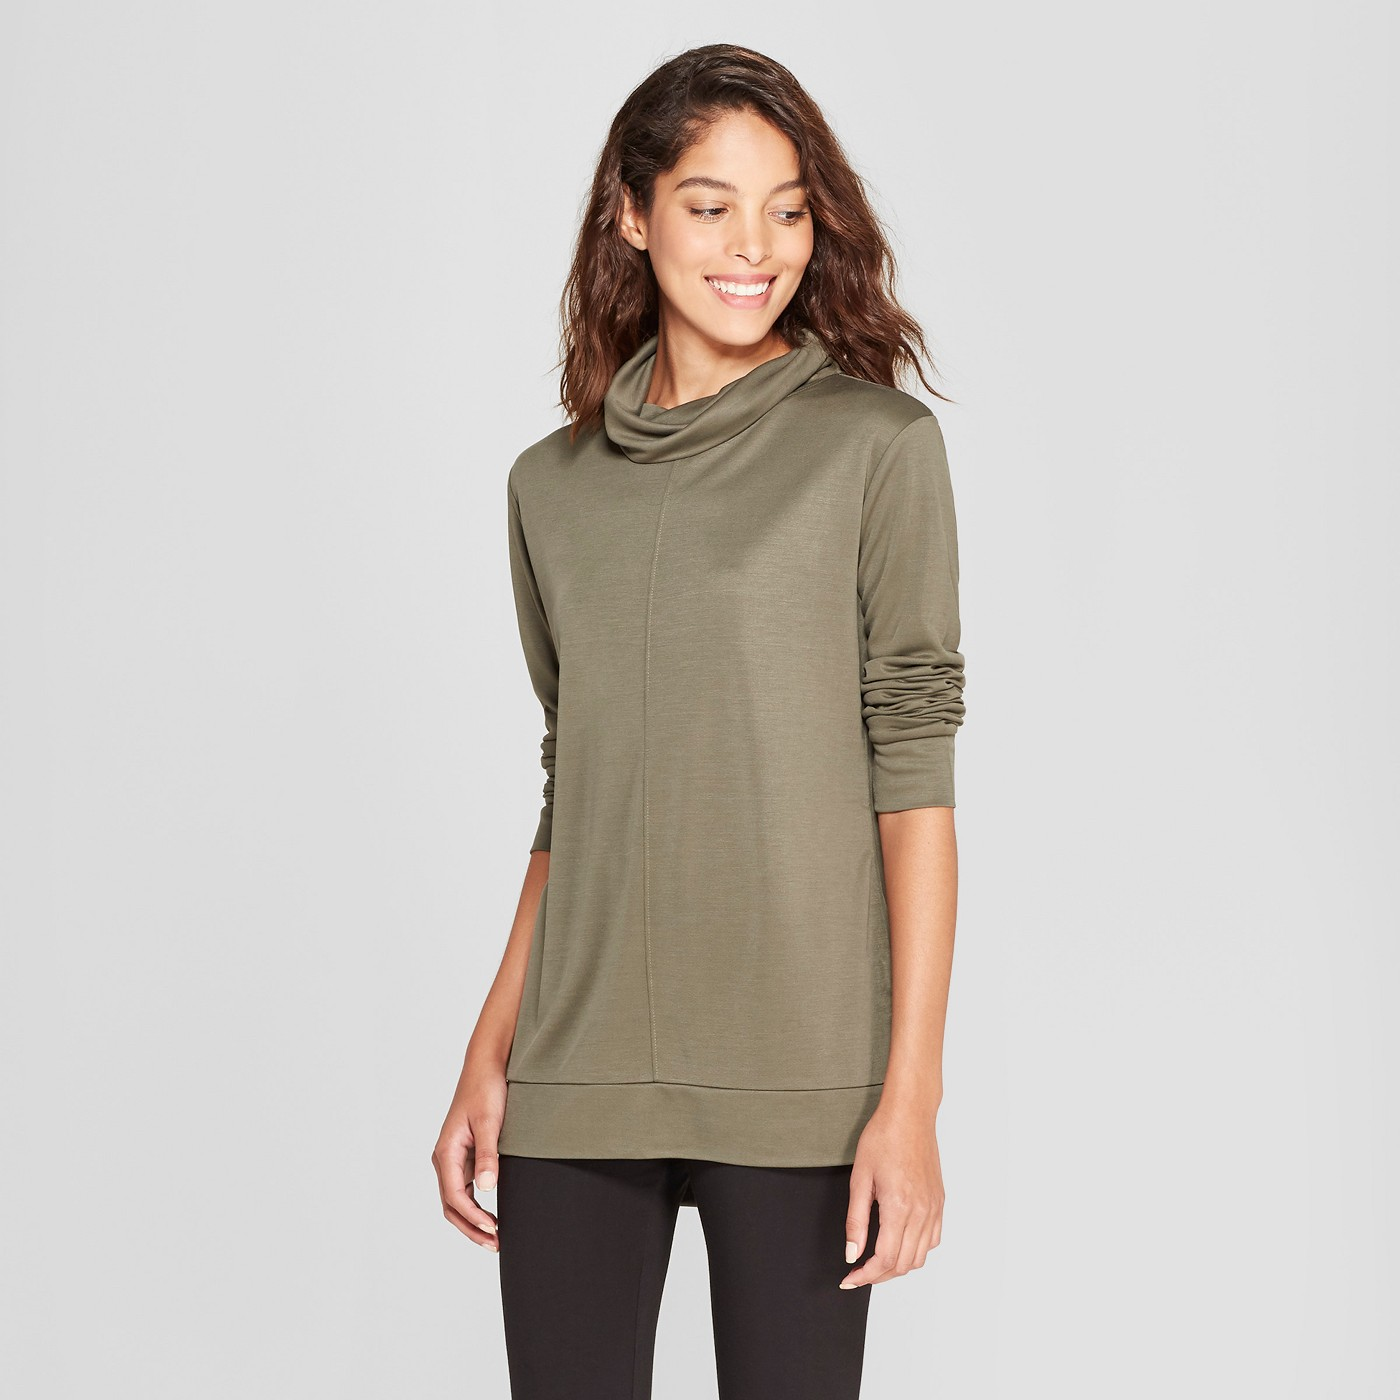 Women's Long Sleeve Cowl Neck Top - A New Day™ - image 1 of 3